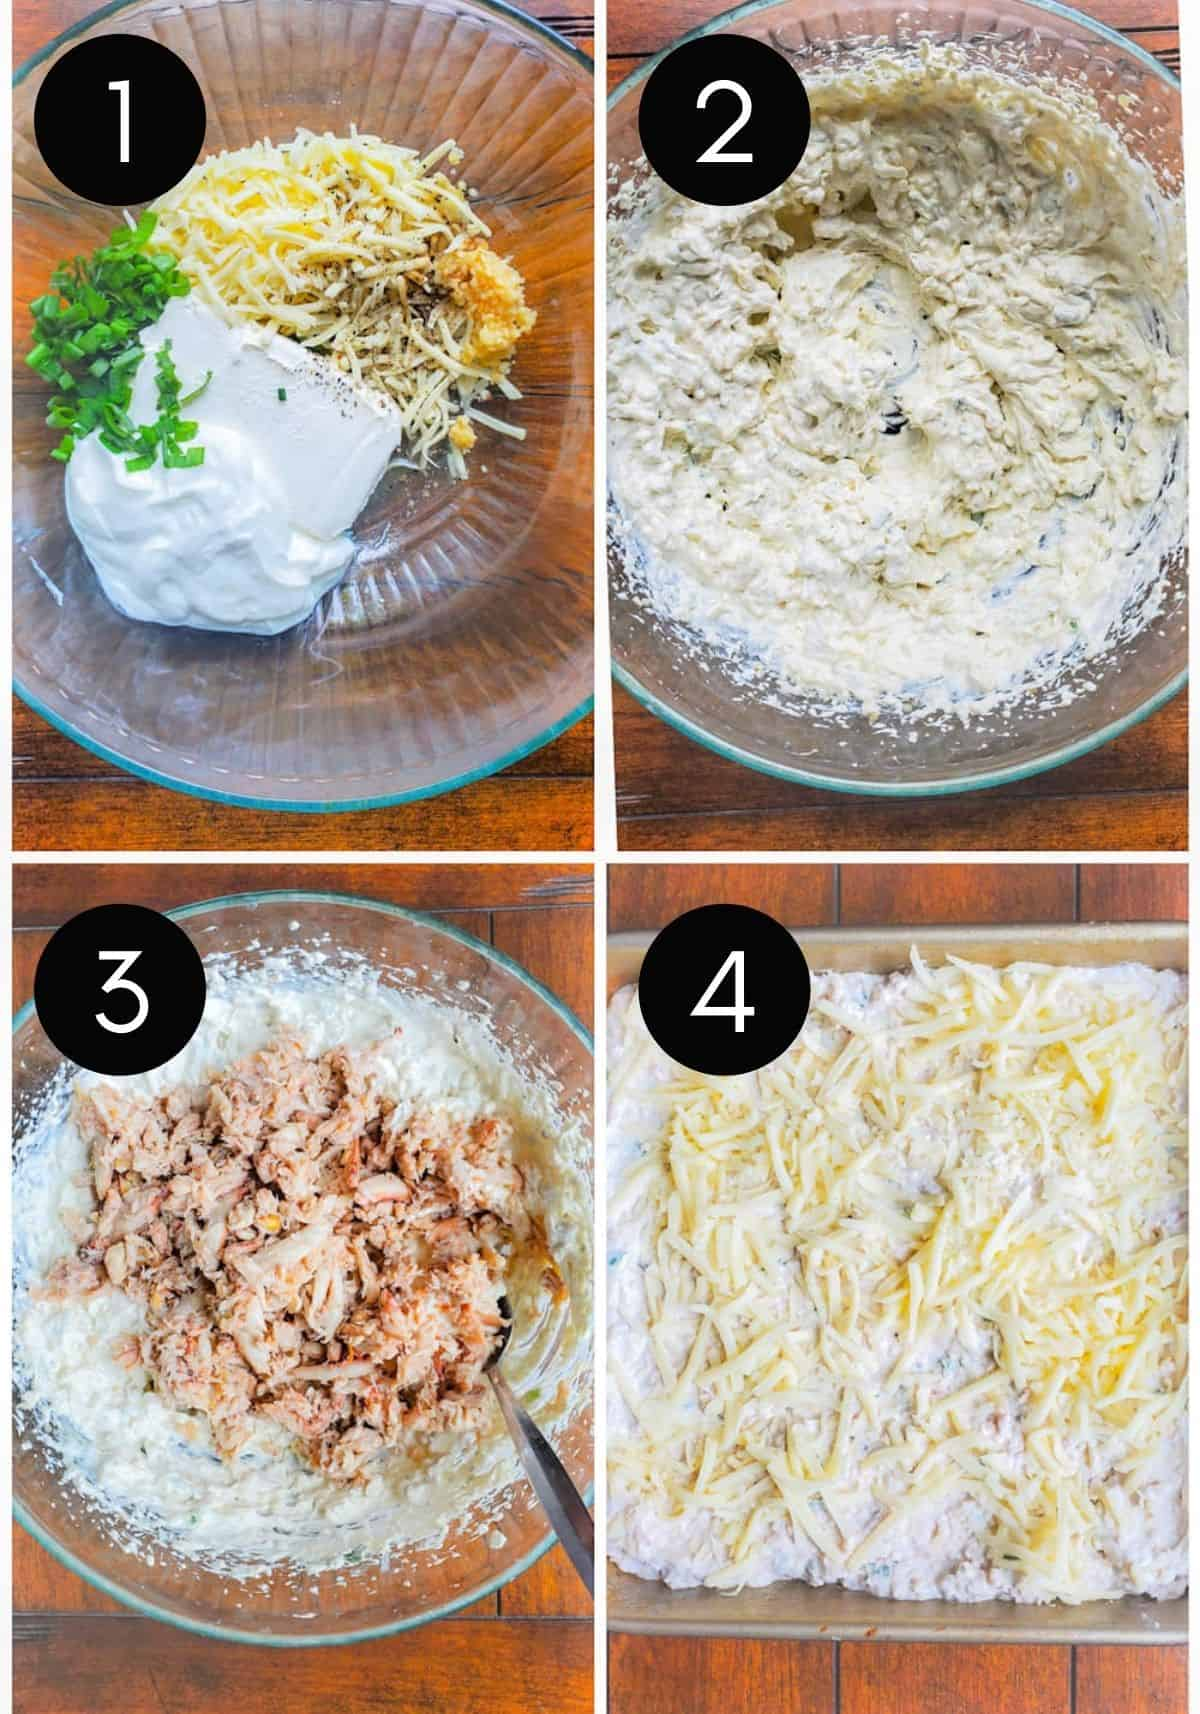 Four prep image collage for crab dip with number overlay.